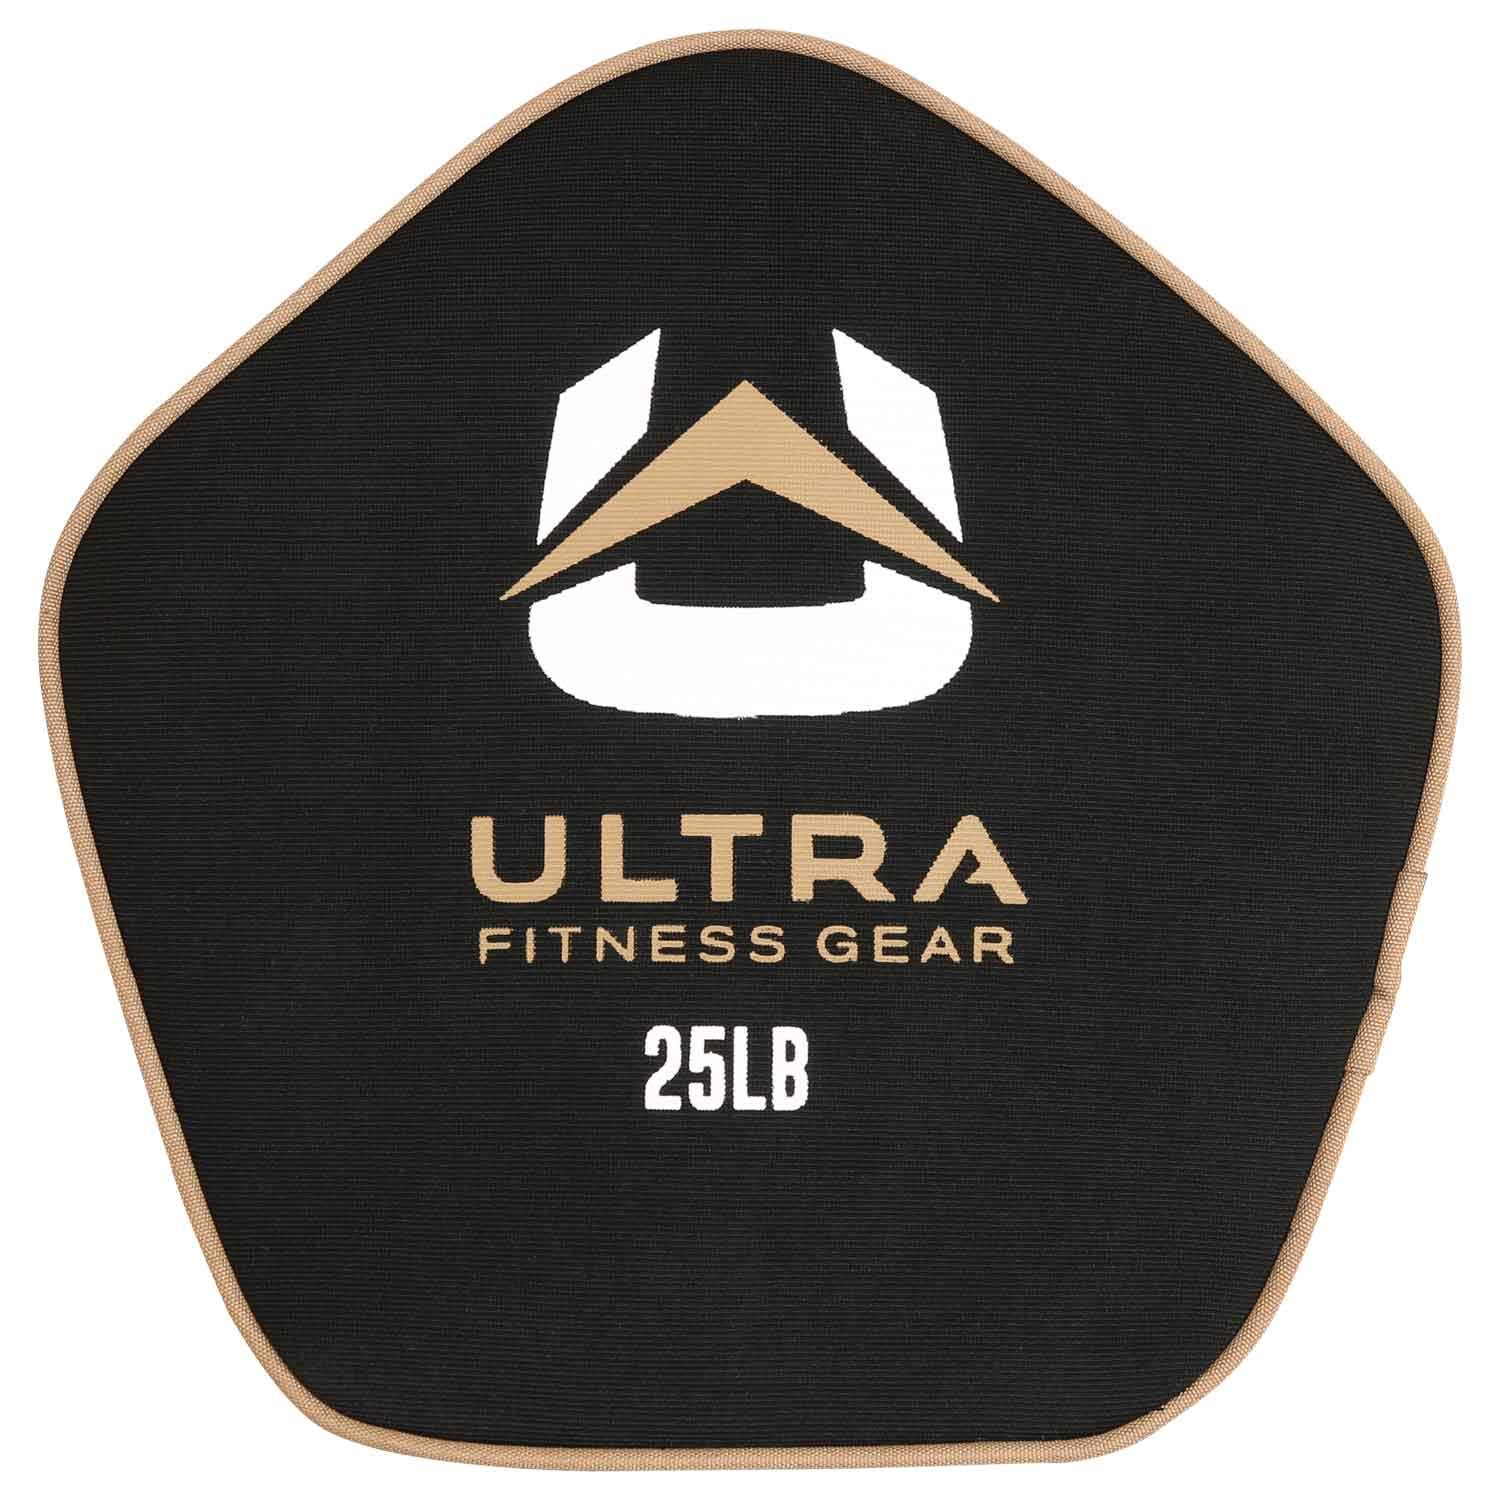 Ultra Fitness Gear Super Tough Fillable Neoprene Pancake Sandbag for Full Body Workouts (Unfilled), 10-50lbs.